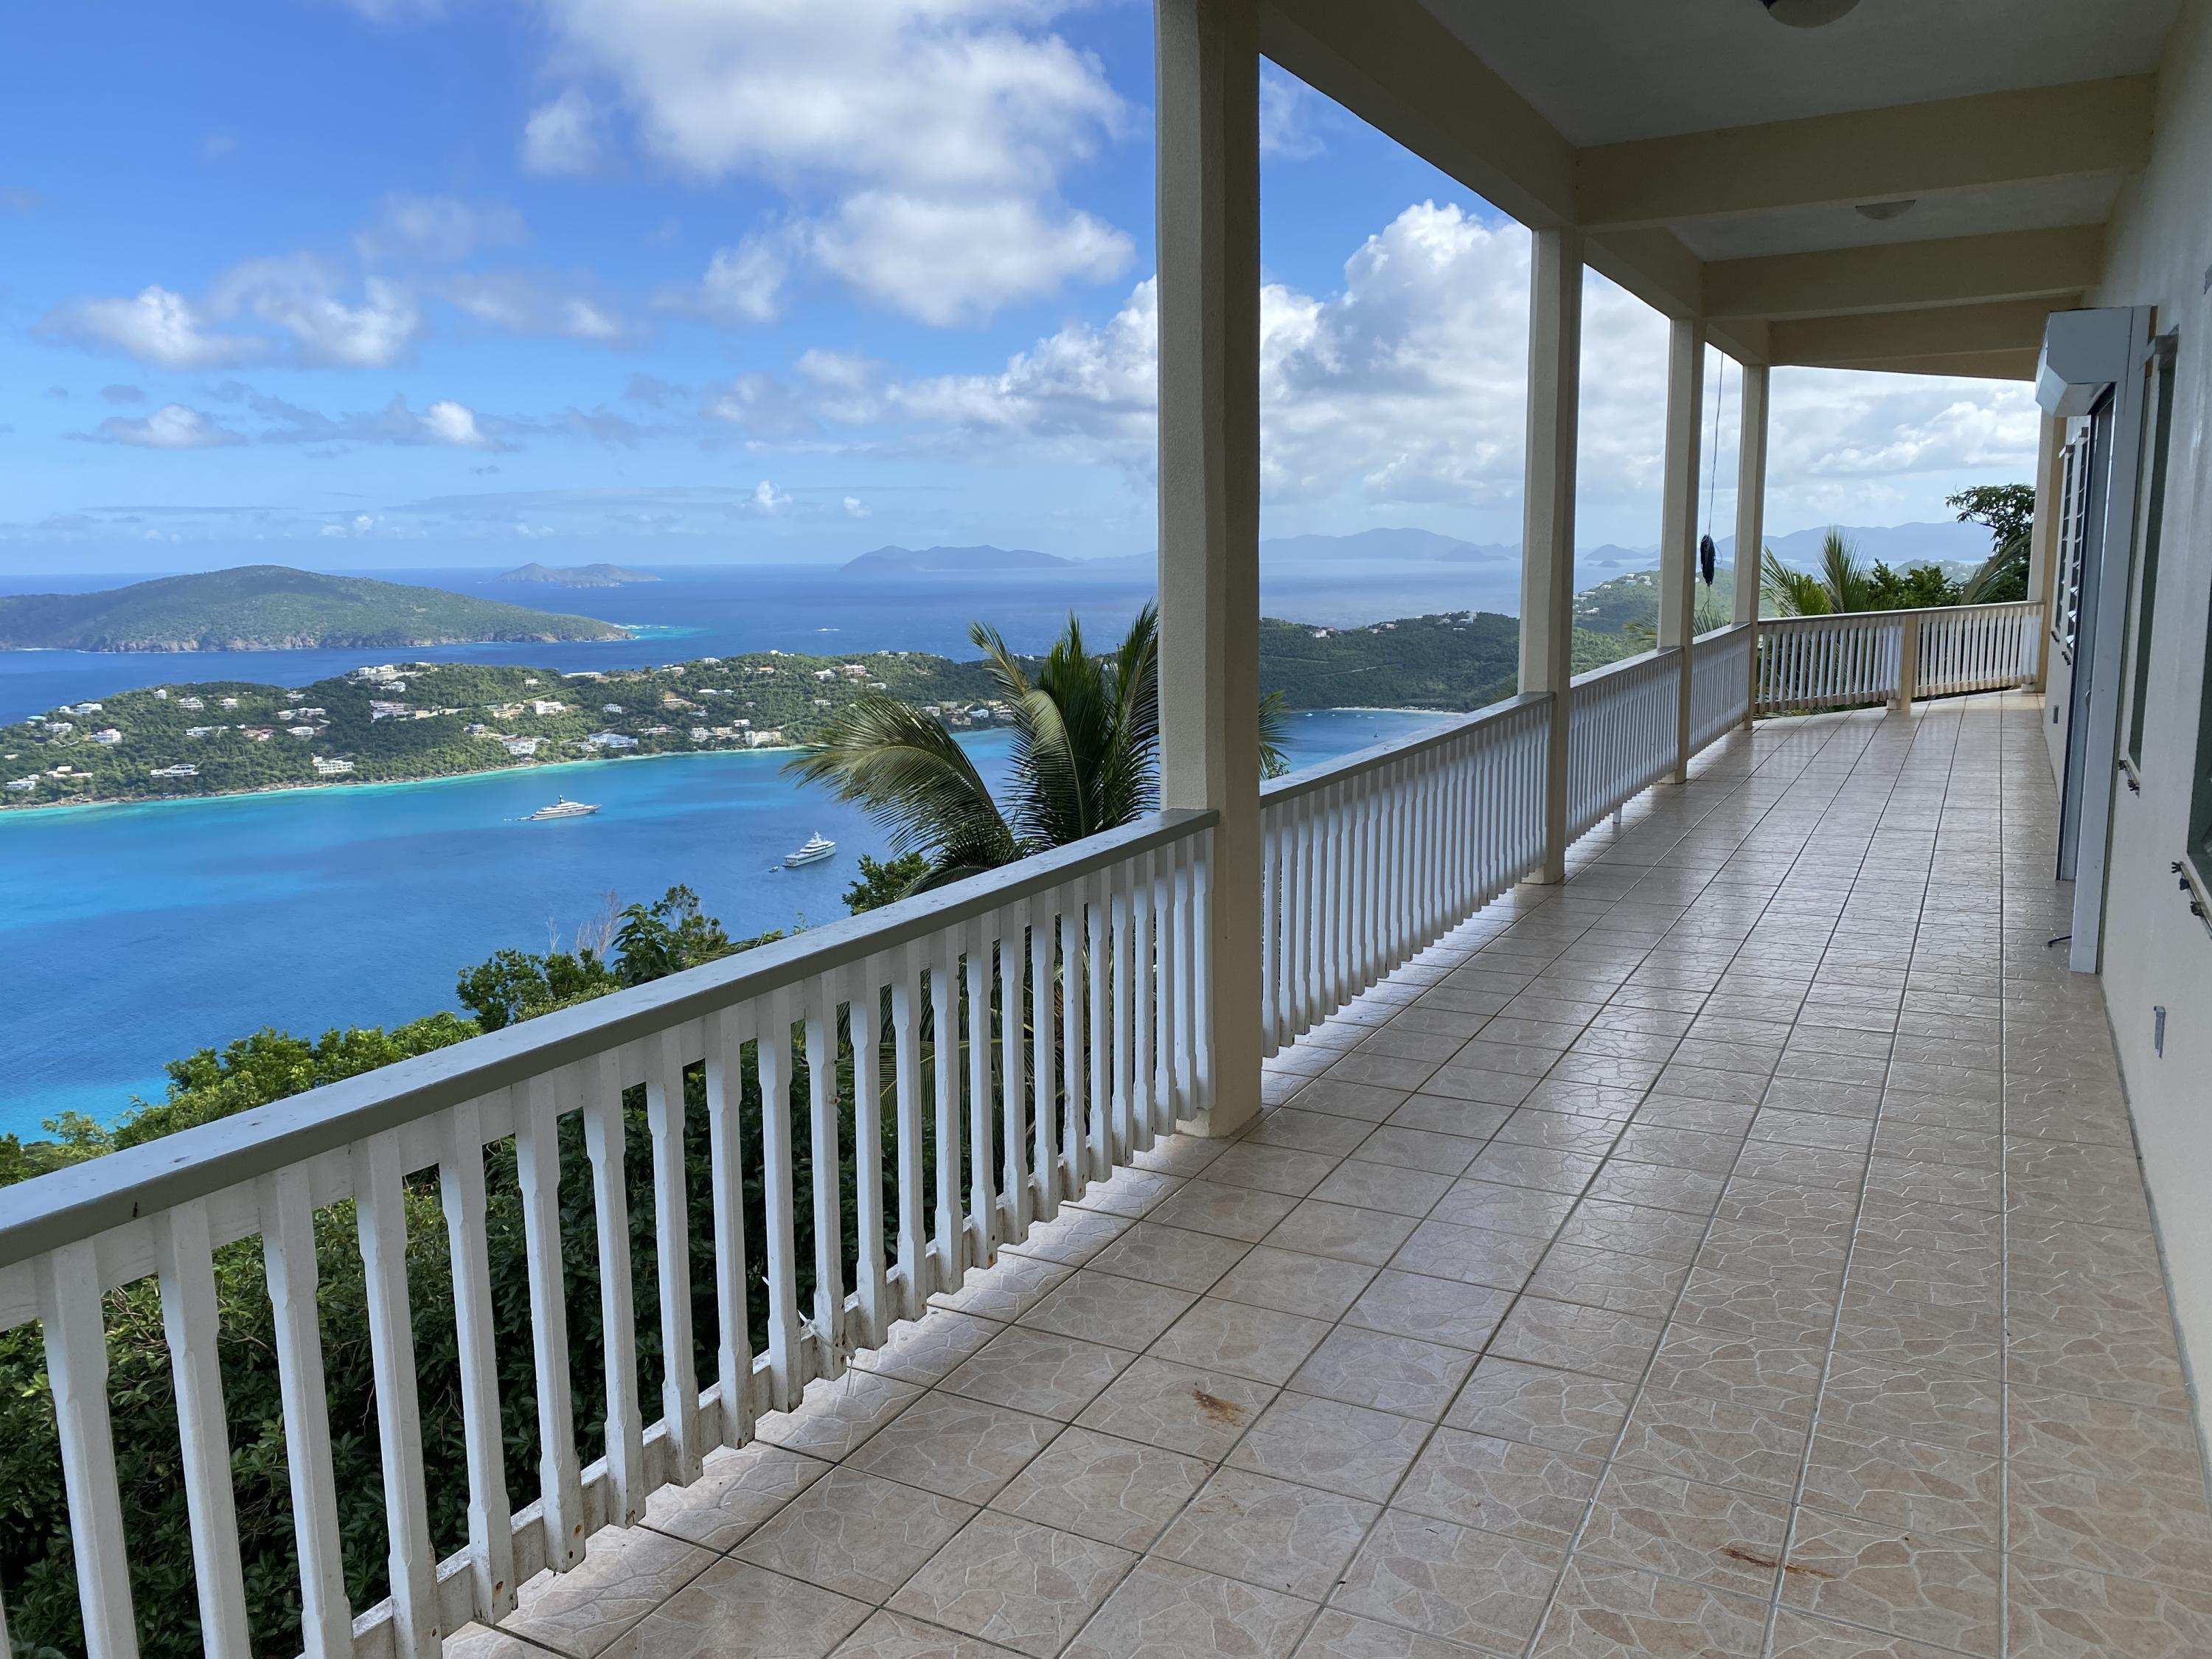 RE/MAX real estate, US Virgin Islands, St. Quaco & Zimmerman, New Listing  Res Rental  St. Peter LNS